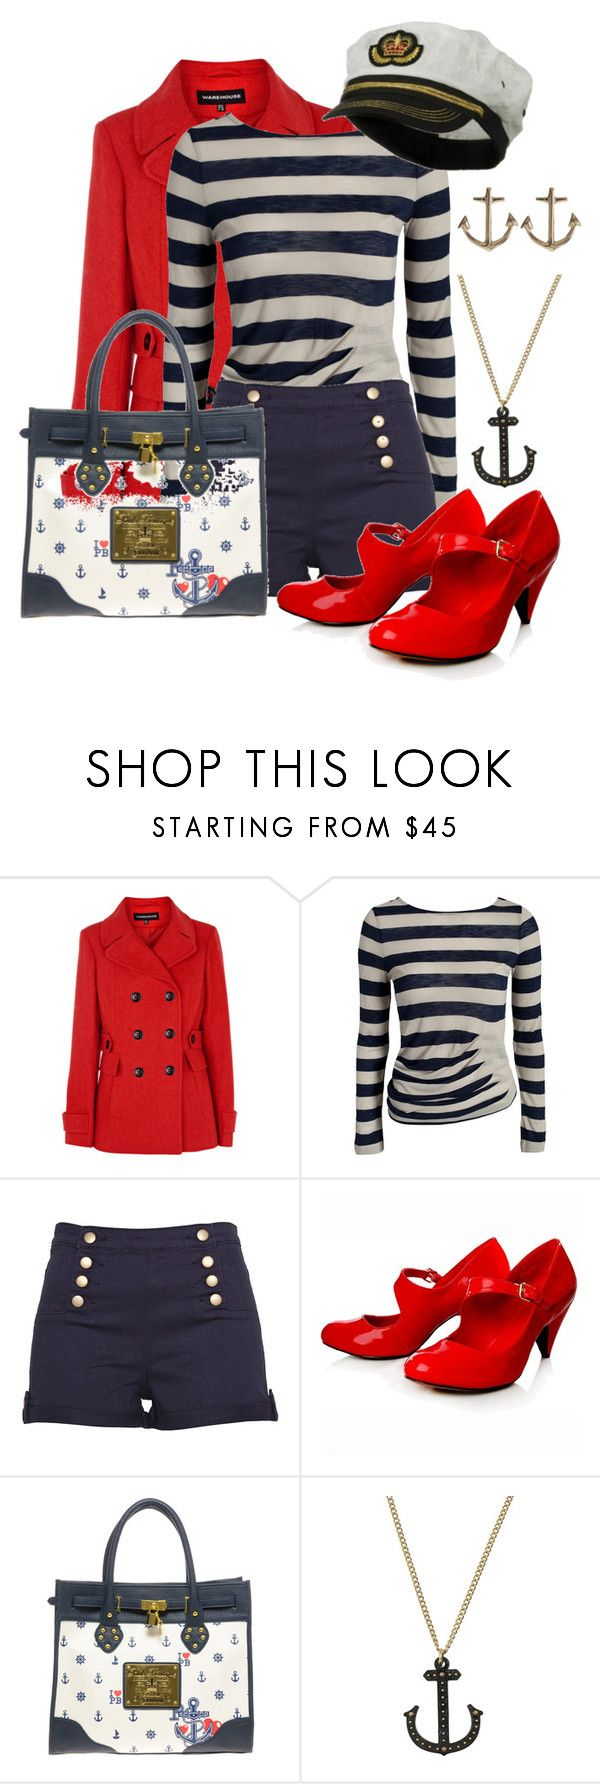 """Set Sail.."" by vogue-kisses ❤ liked on Polyvore featuring Warehouse, MANGO, Dotti, Carvela Kurt Geiger, Paul's Boutique, Philip Crangi and Minor Obsessions"